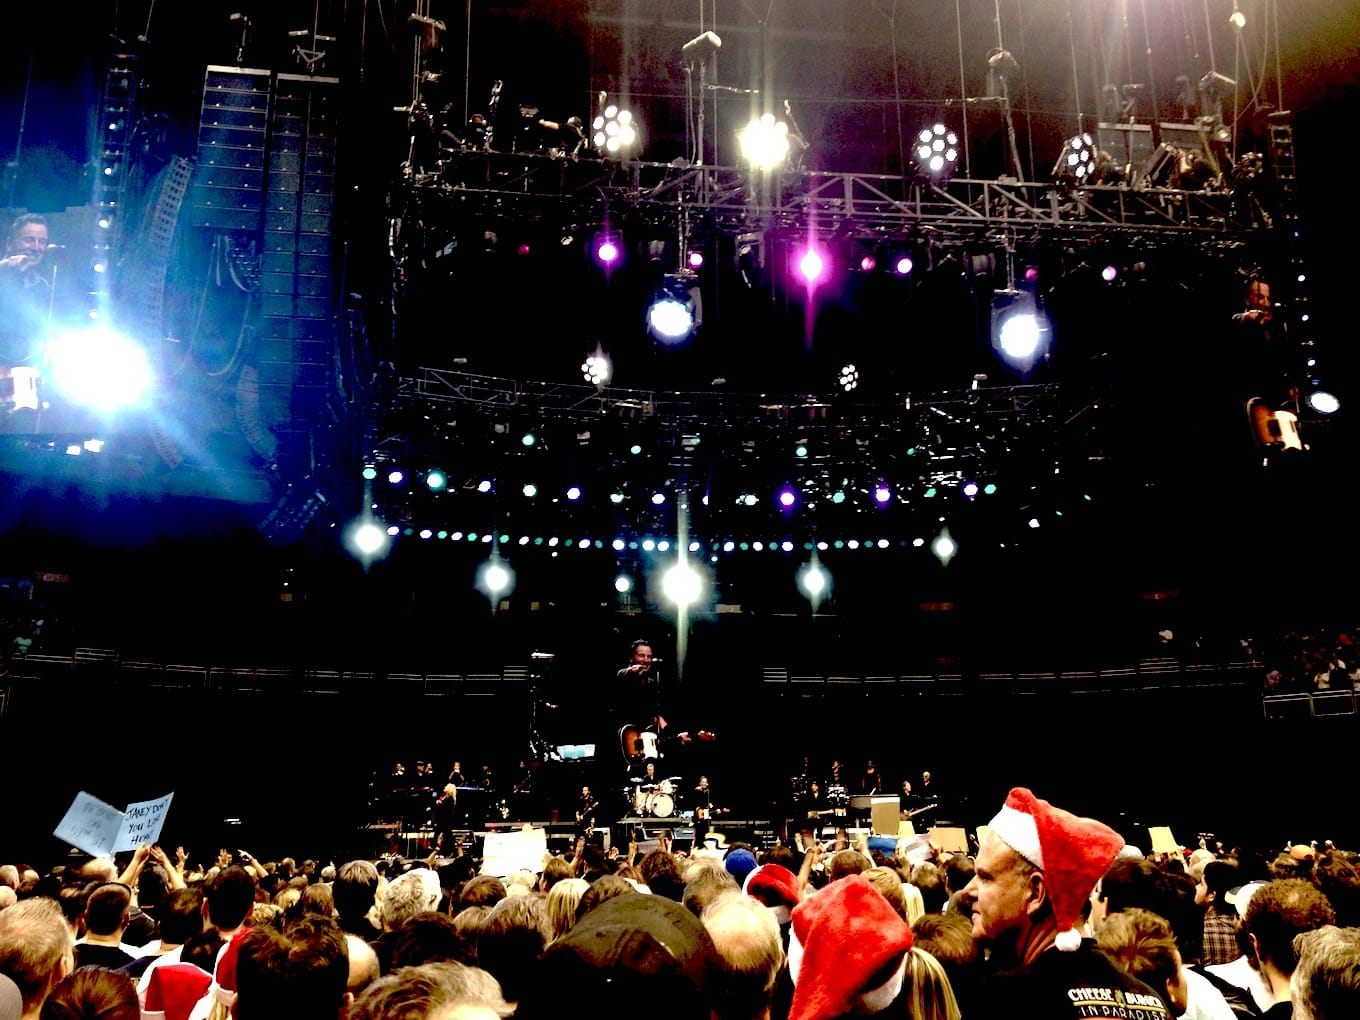 Springsteen in concert